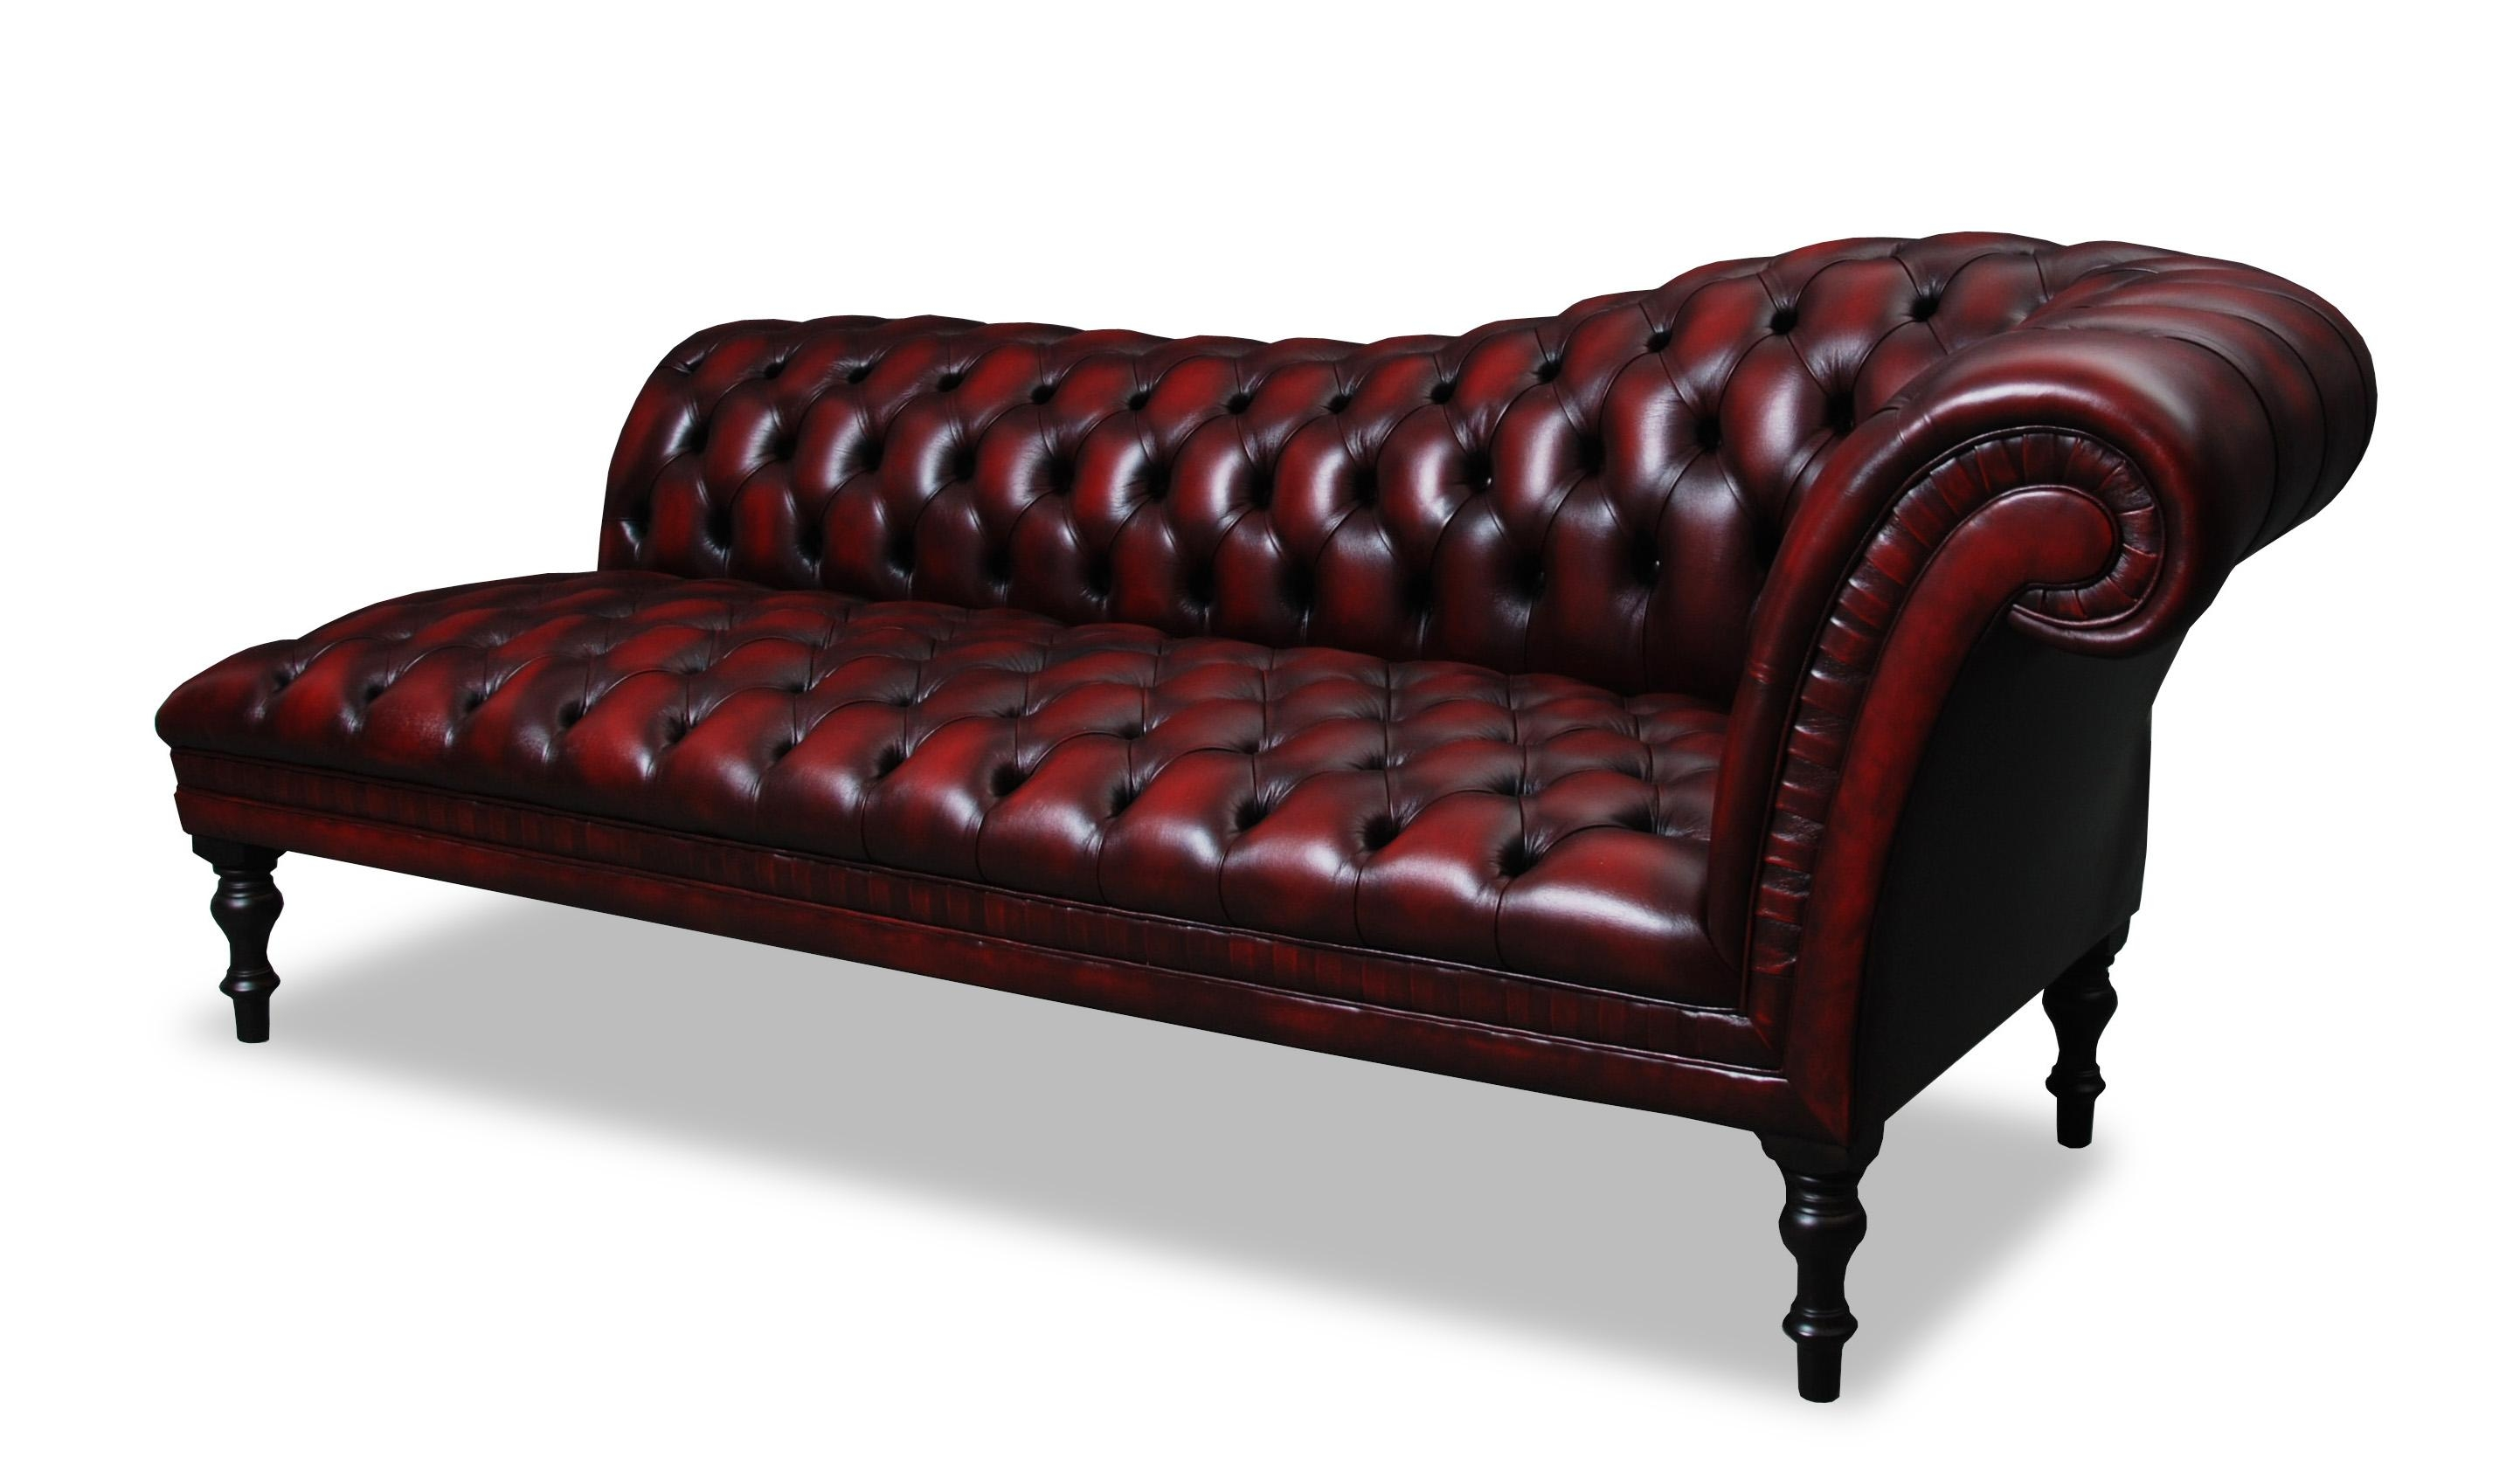 Storage Chesterfield Chaise Lounge Upholstered In Antique Oxblood Within Red Chesterfield Sofas (Image 17 of 20)